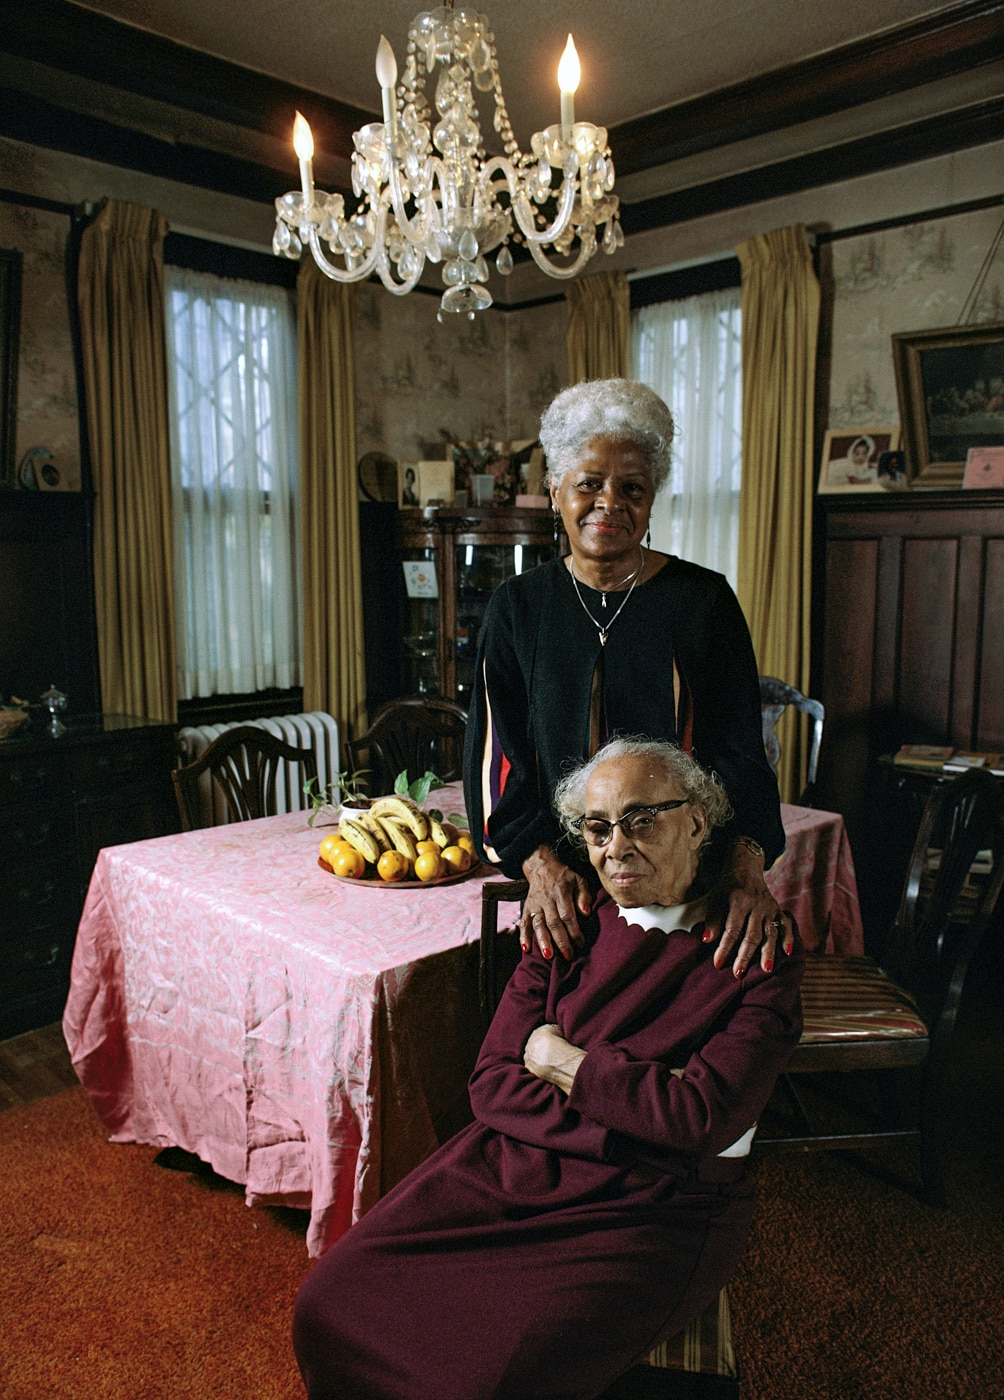 Two elderly women in dining room in home (© Karen Kasmauski/Corbis via Getty Images)